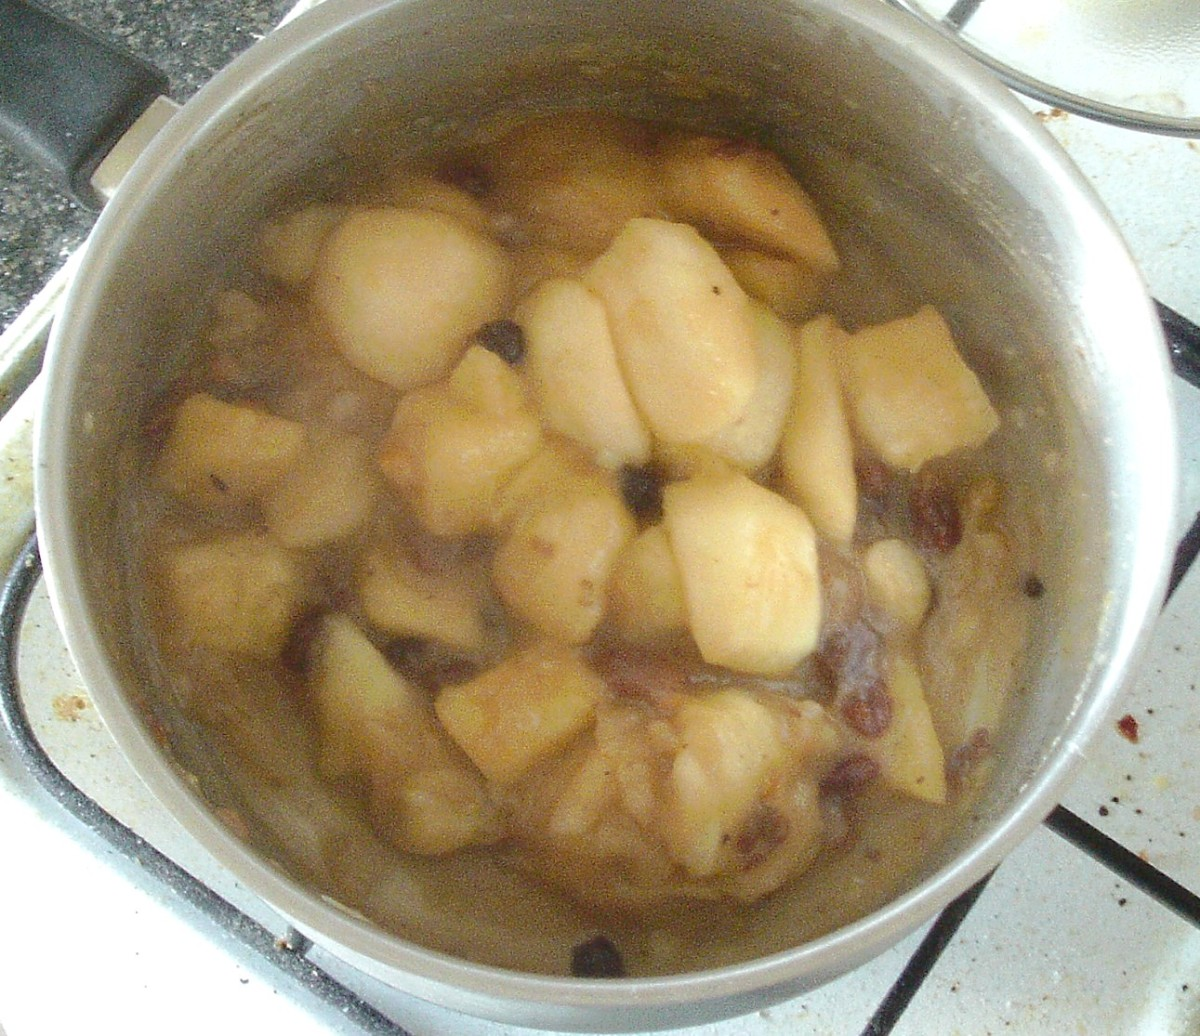 Stewed apples, pineapple and mincemeat